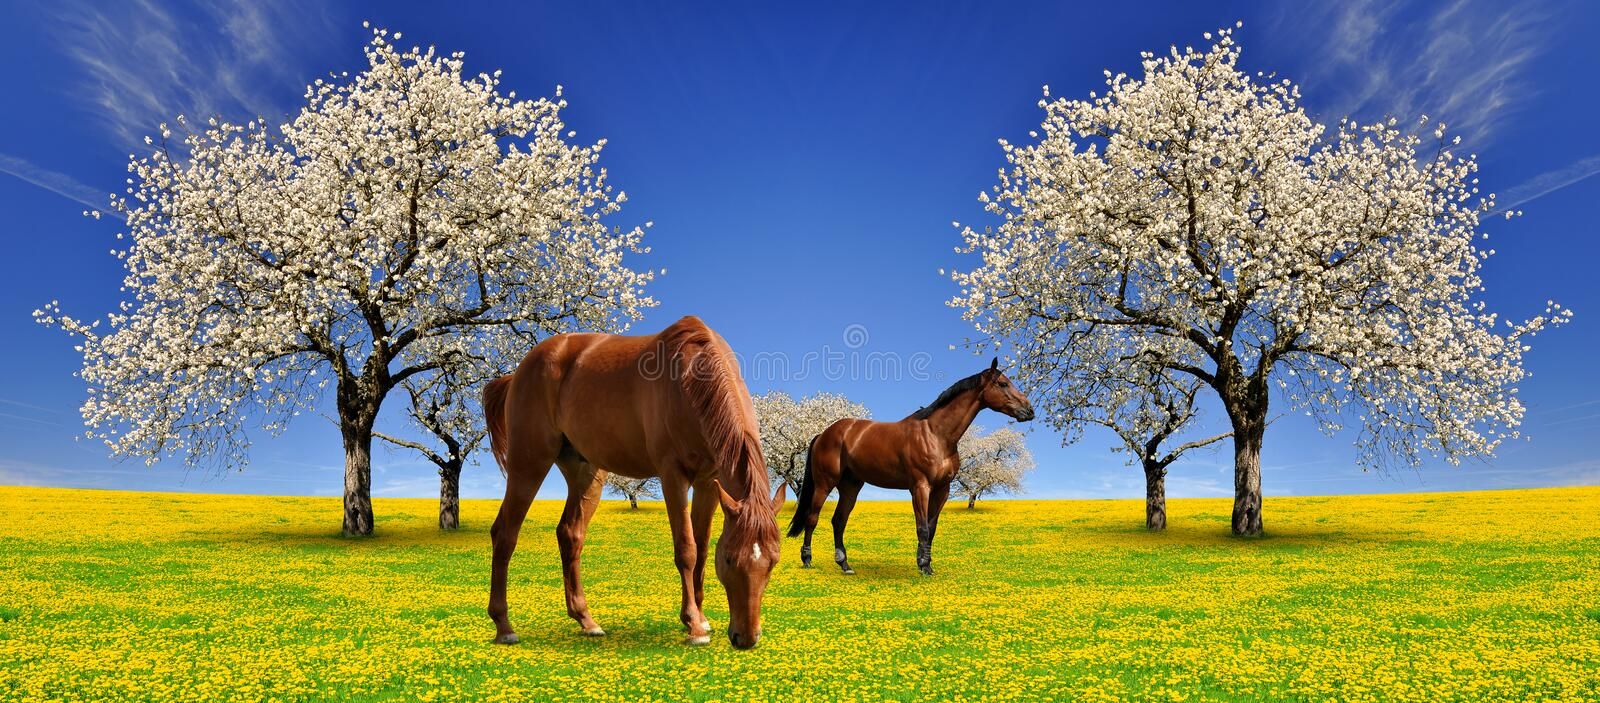 Horses in meadow royalty free stock image